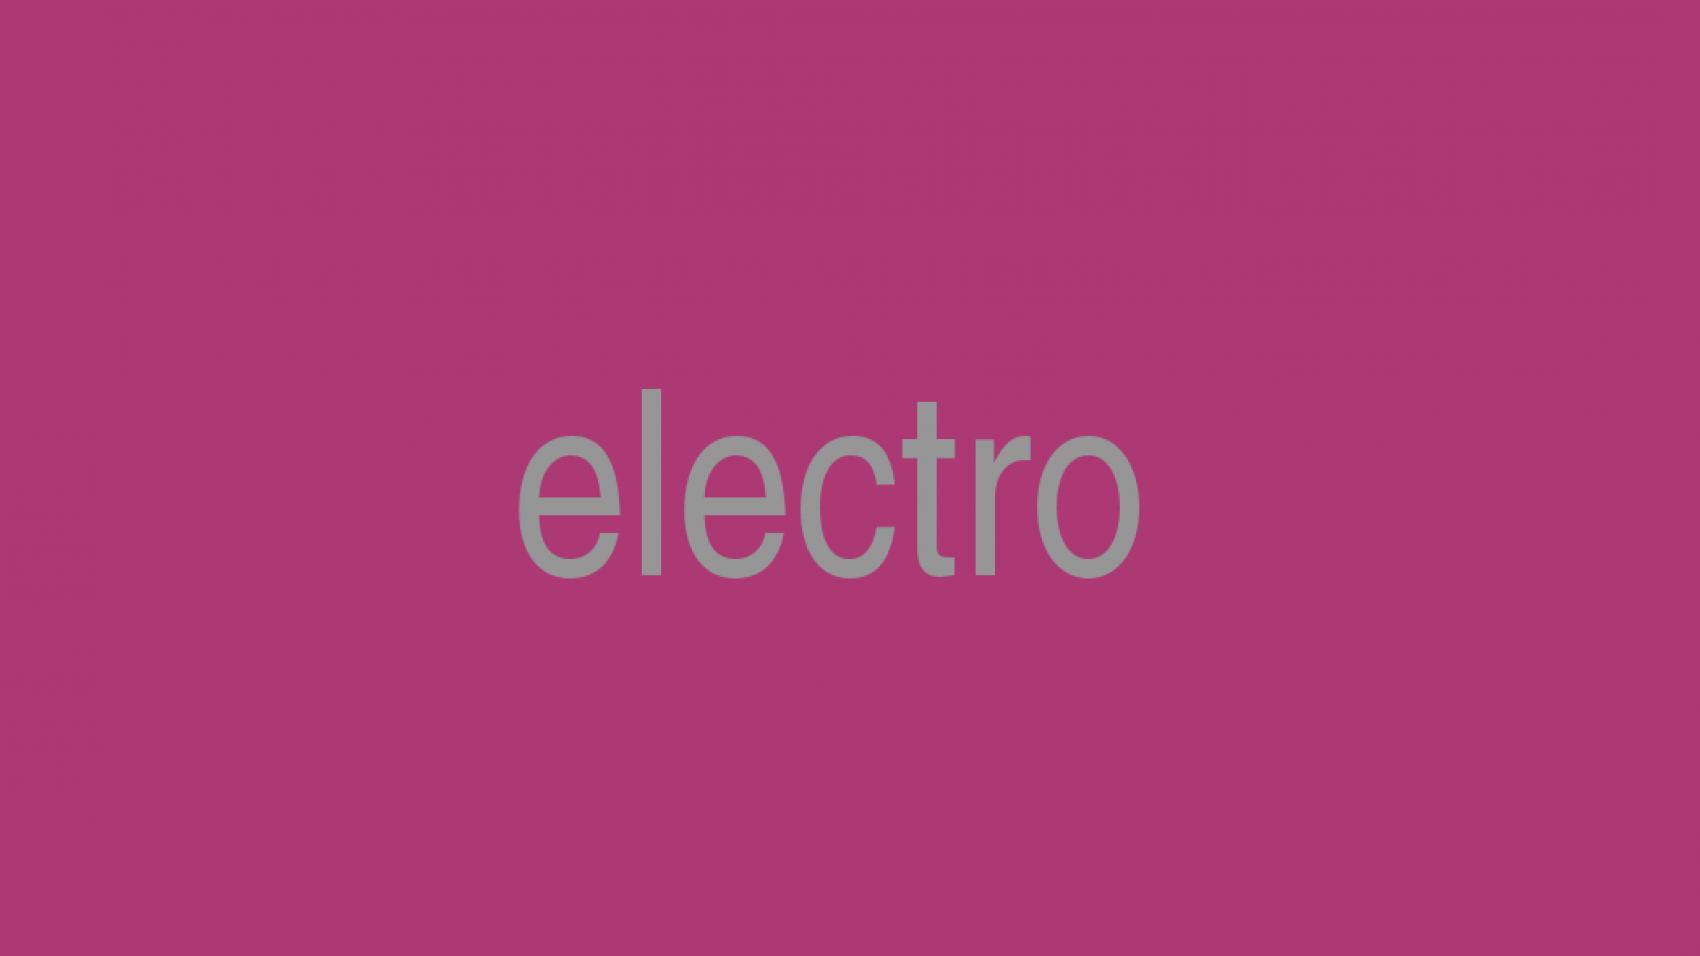 electro-placeholder-blog-2